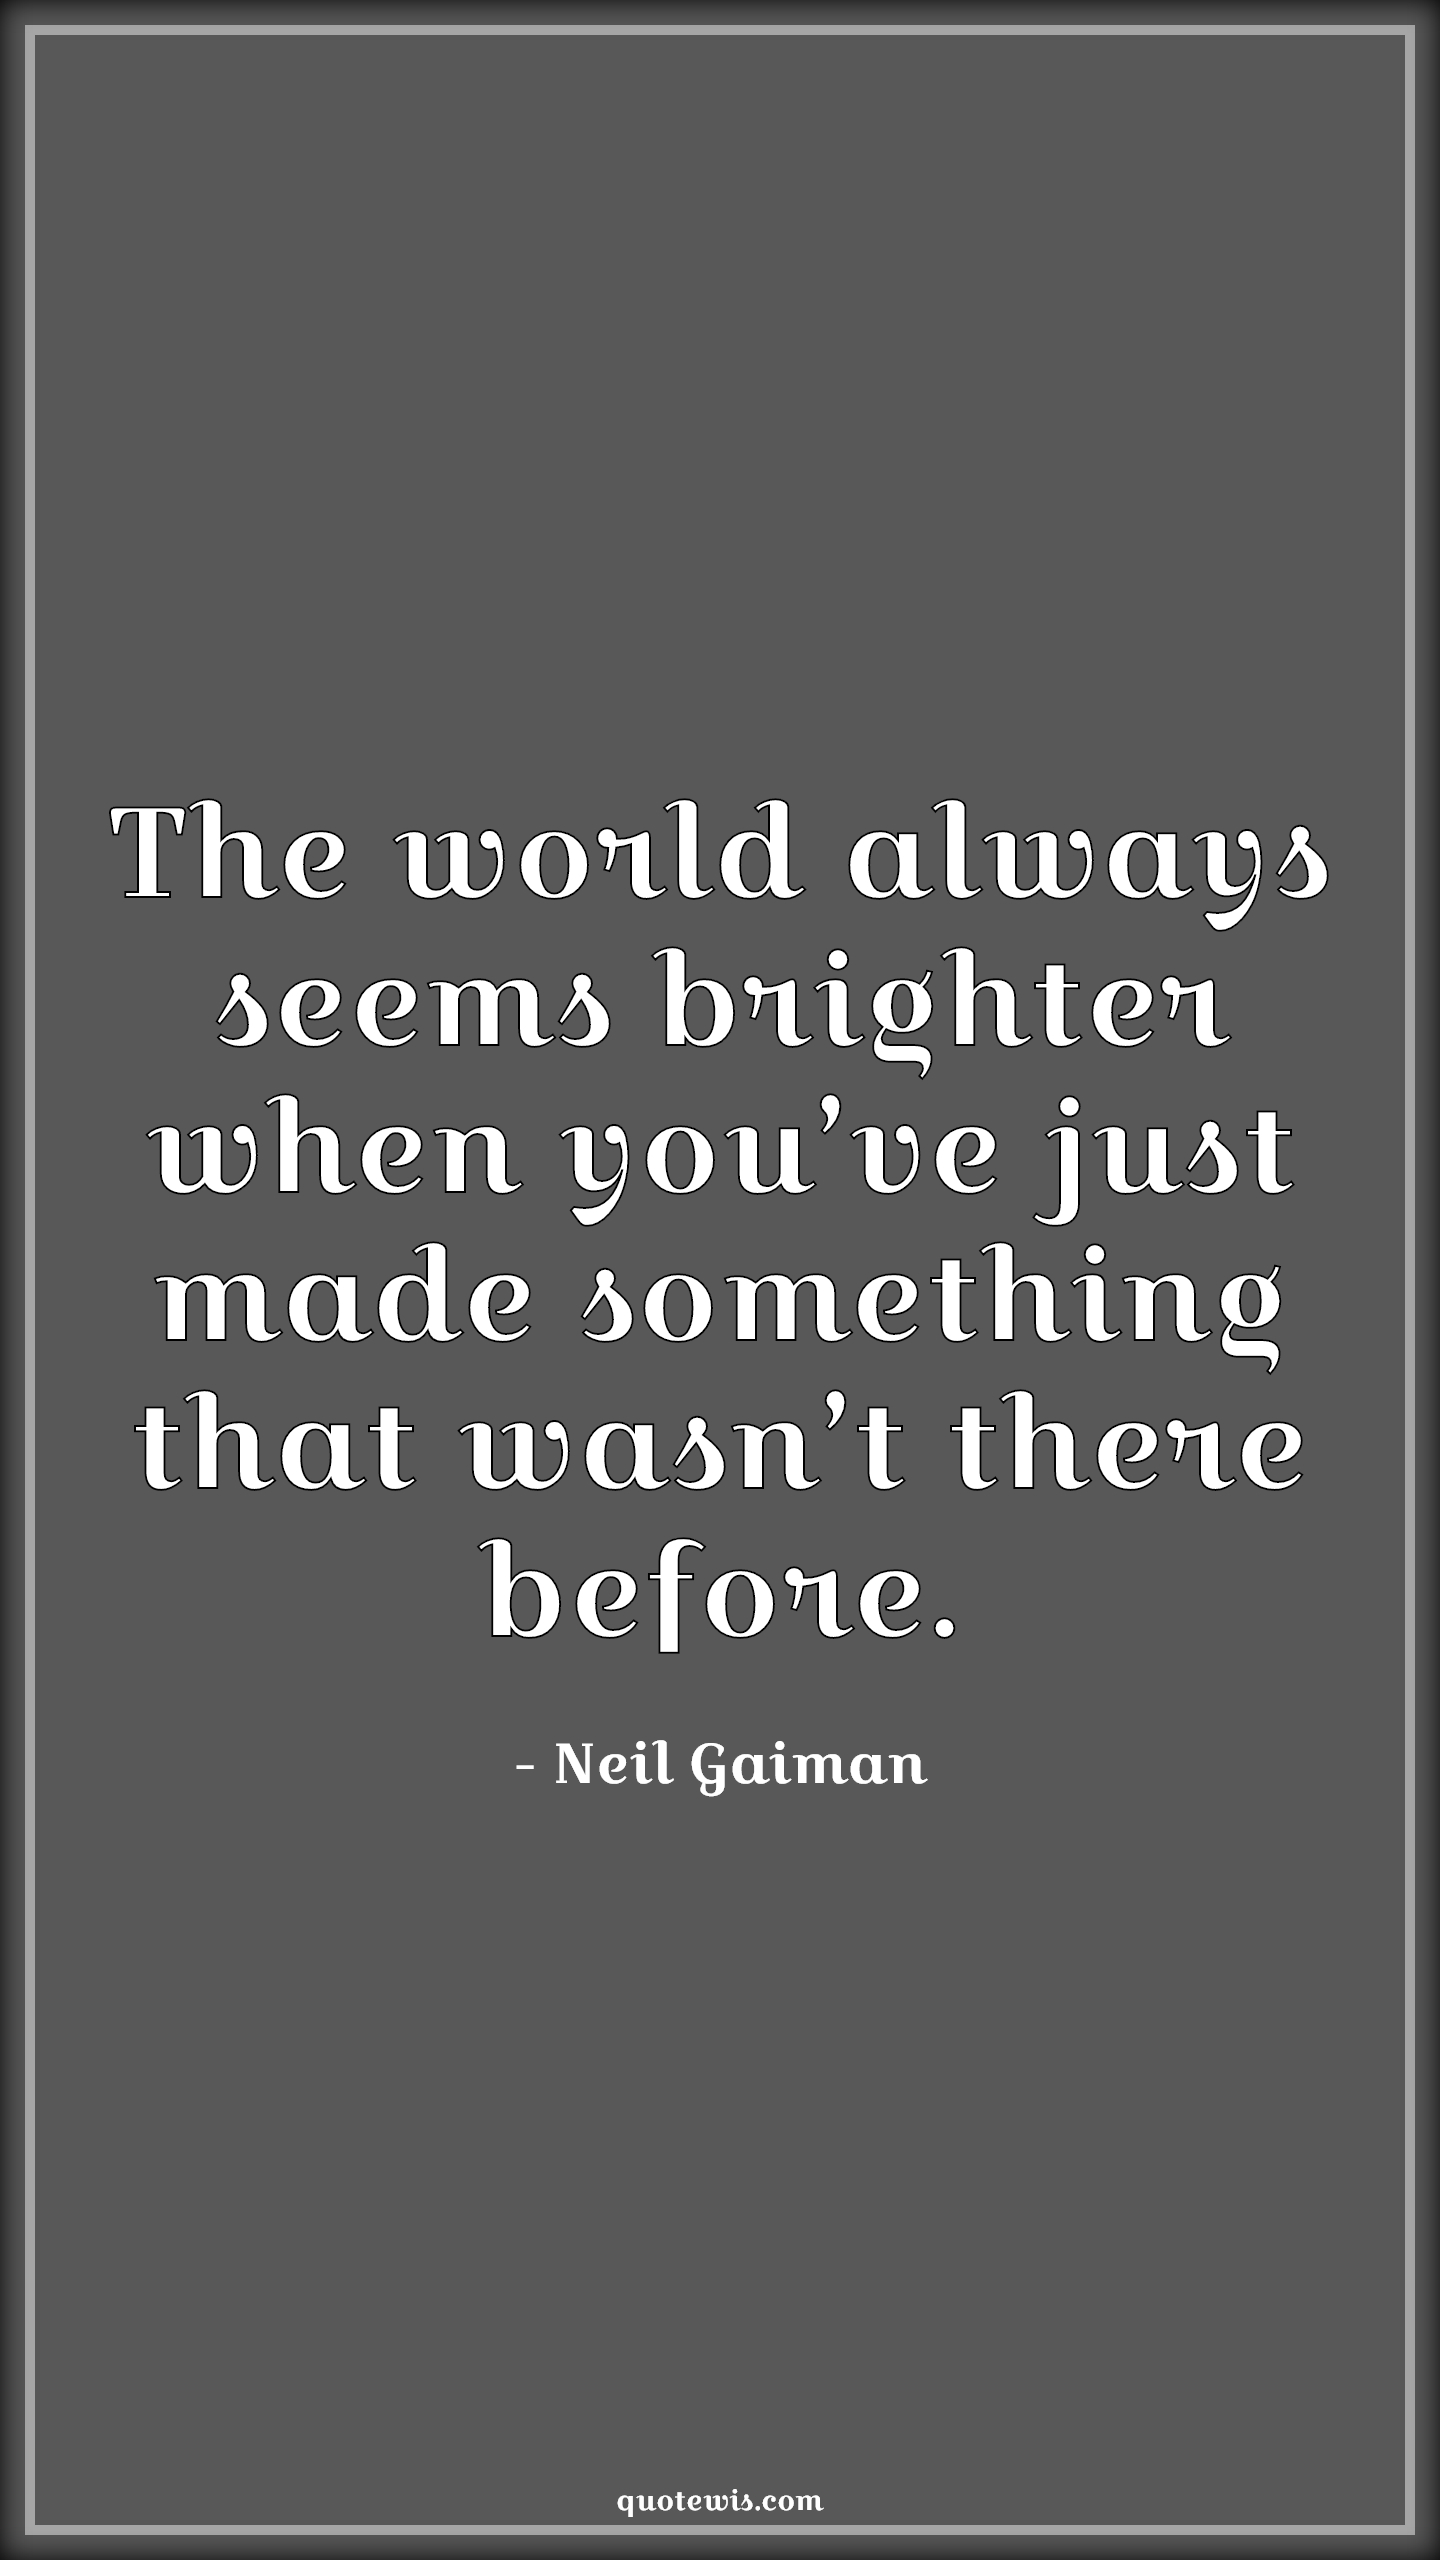 The world always seems brighter when you've just made something that wasn't there before.